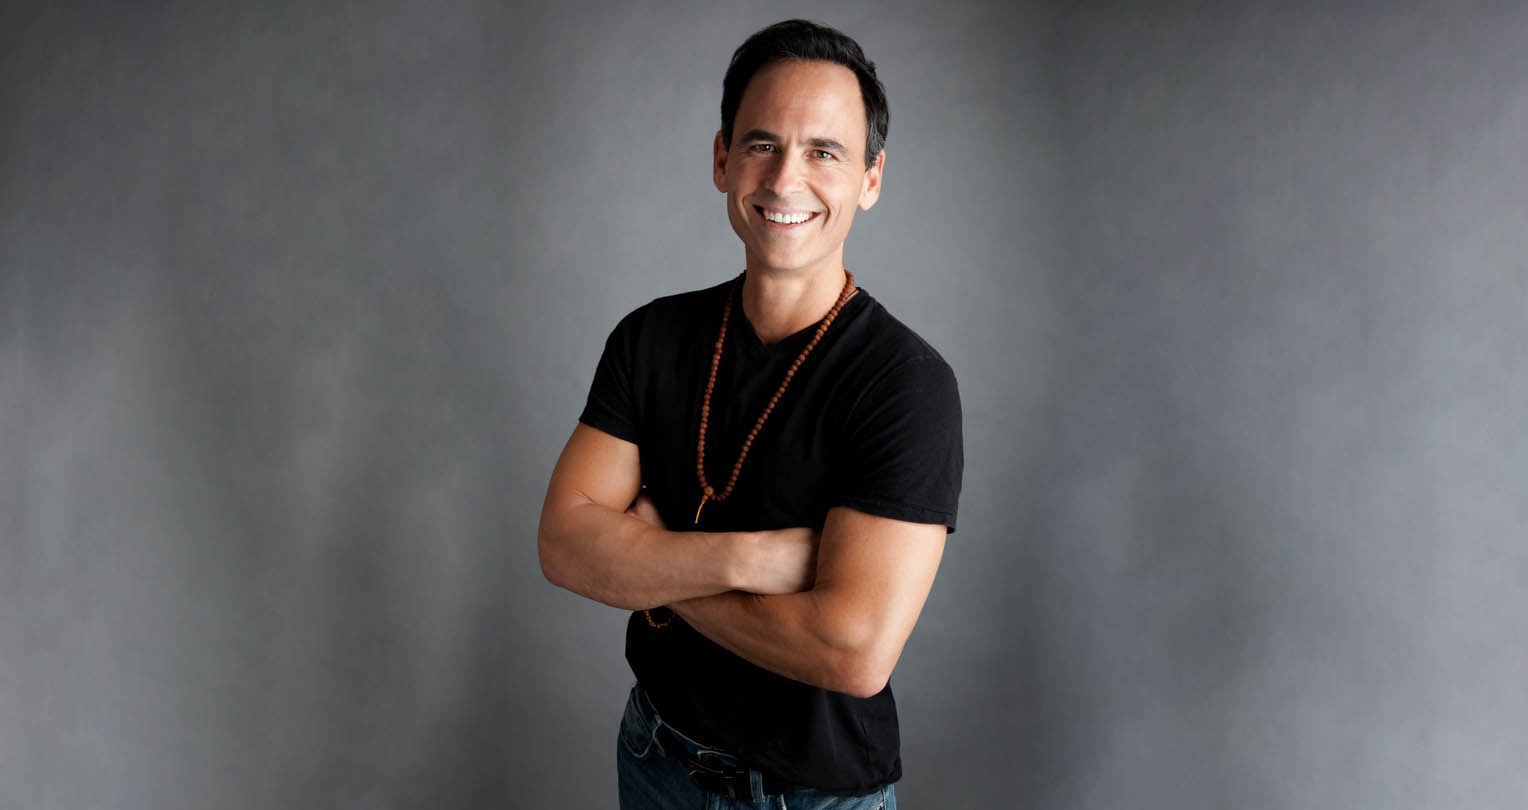 Derek Rydall went from drug abuse and misery to success and fulfillment by discovering a little-known philosophy for personal growth.